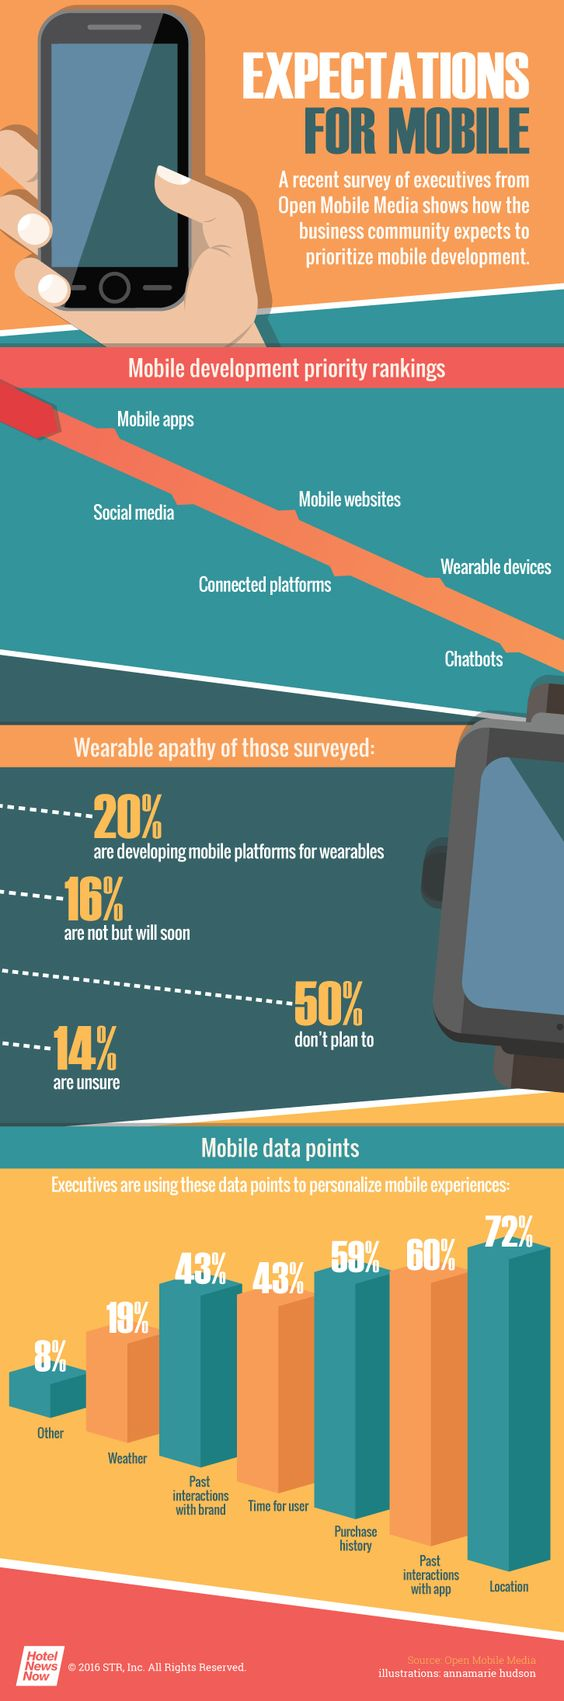 HNN - Infographic: A look at expectations for mobile